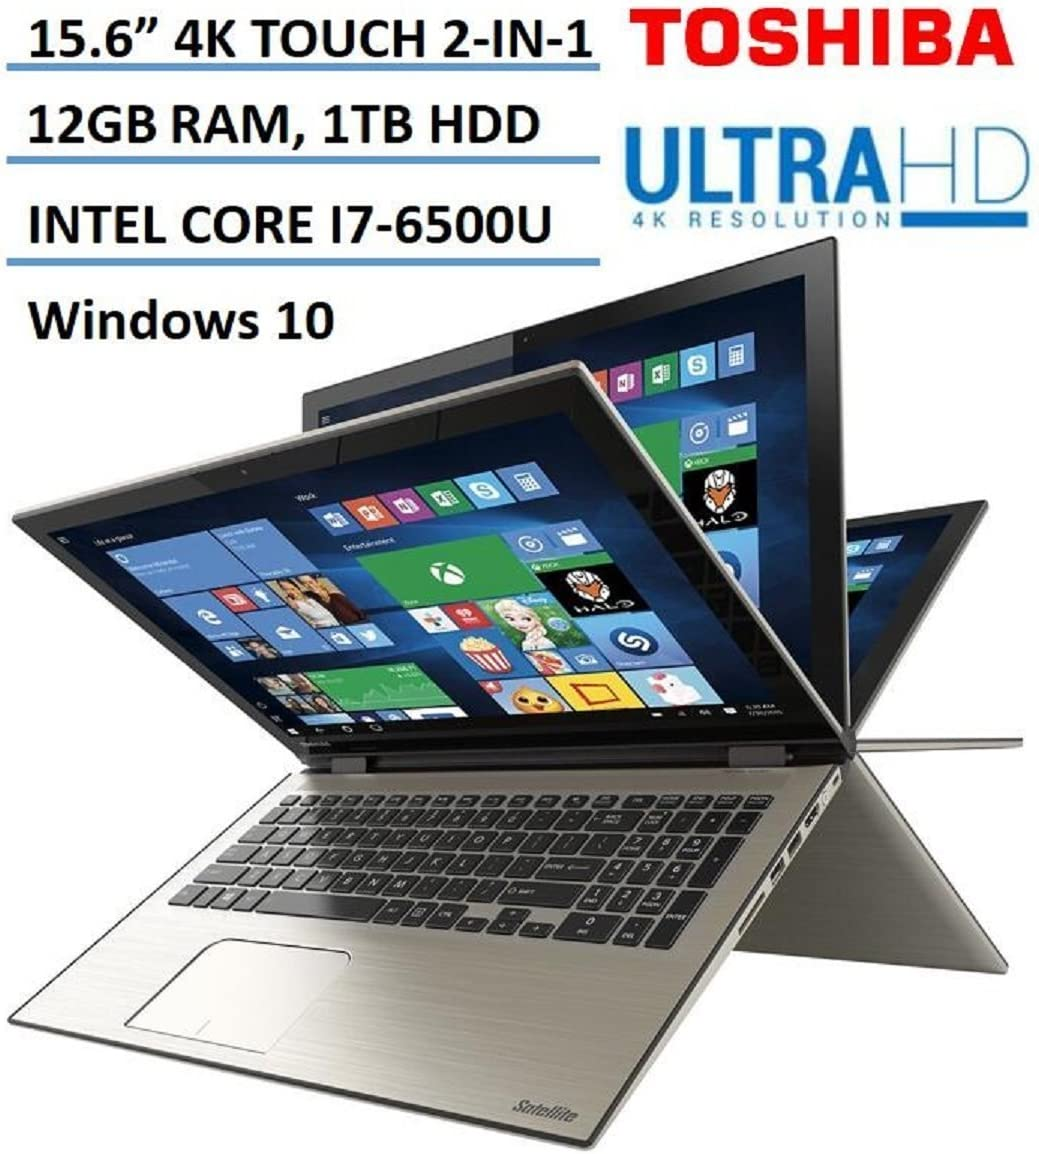 "Toshiba Satellite Radius 2-in-1 15.6"" Ultra HD 4K Touchscreen Laptop, Intel Core i7-6500U Processor, 12GB RAM, 1TB HDD, Backlit Keyboard, Windows 10, Carbon Gray"